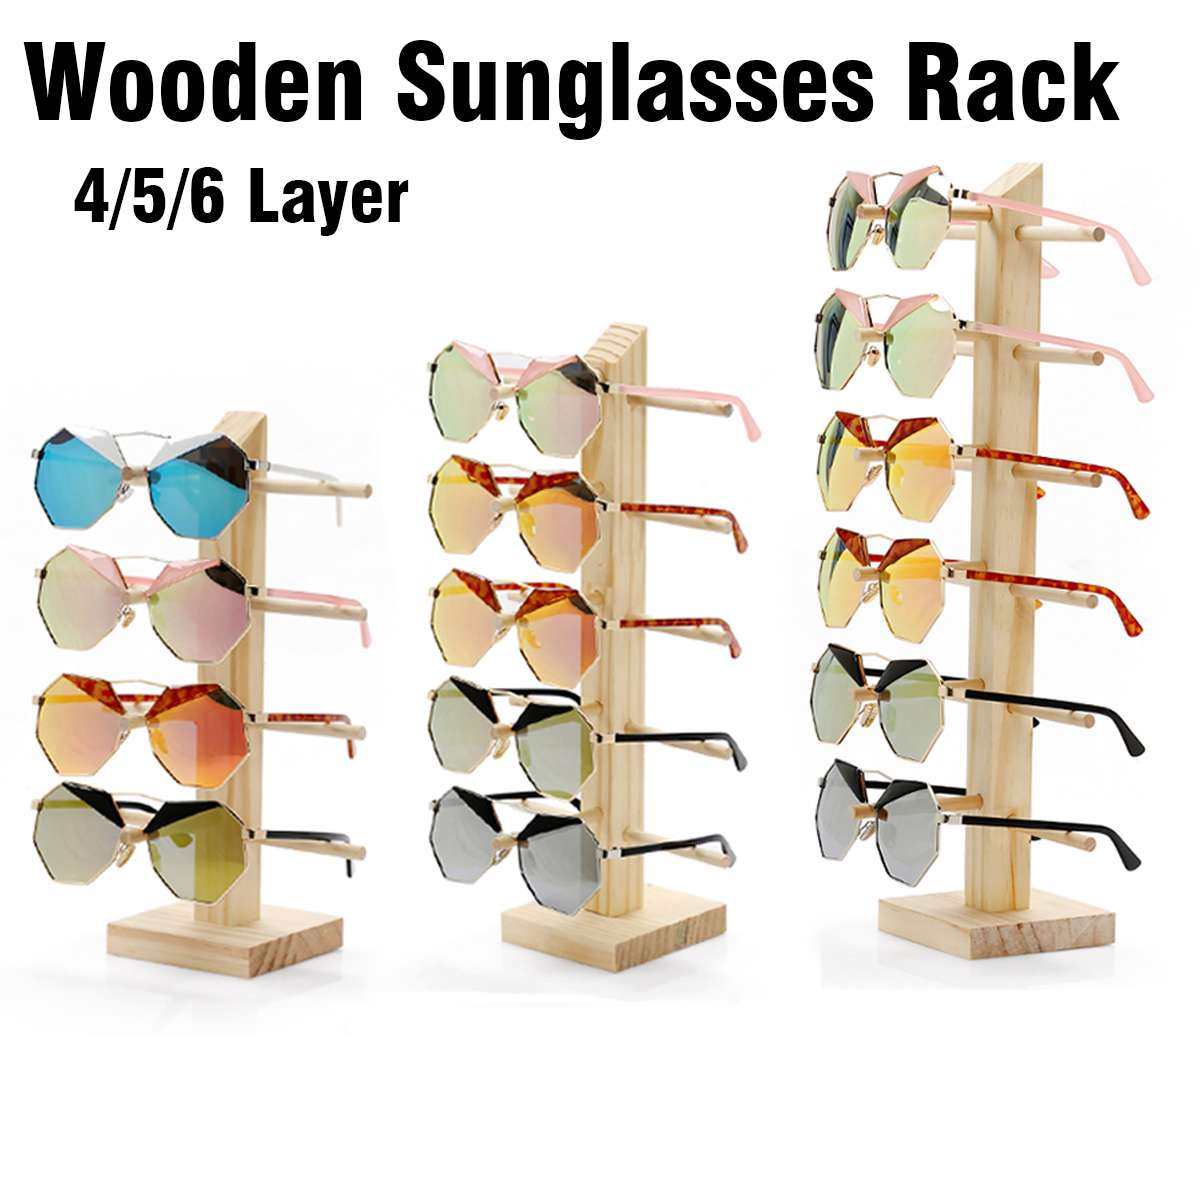 4/5/6 Layer Multi-layer Solid Wood Sunglasses Rack, Eyeglass Rack, Jewelry Display Rack, Used For Glasses Cabinets